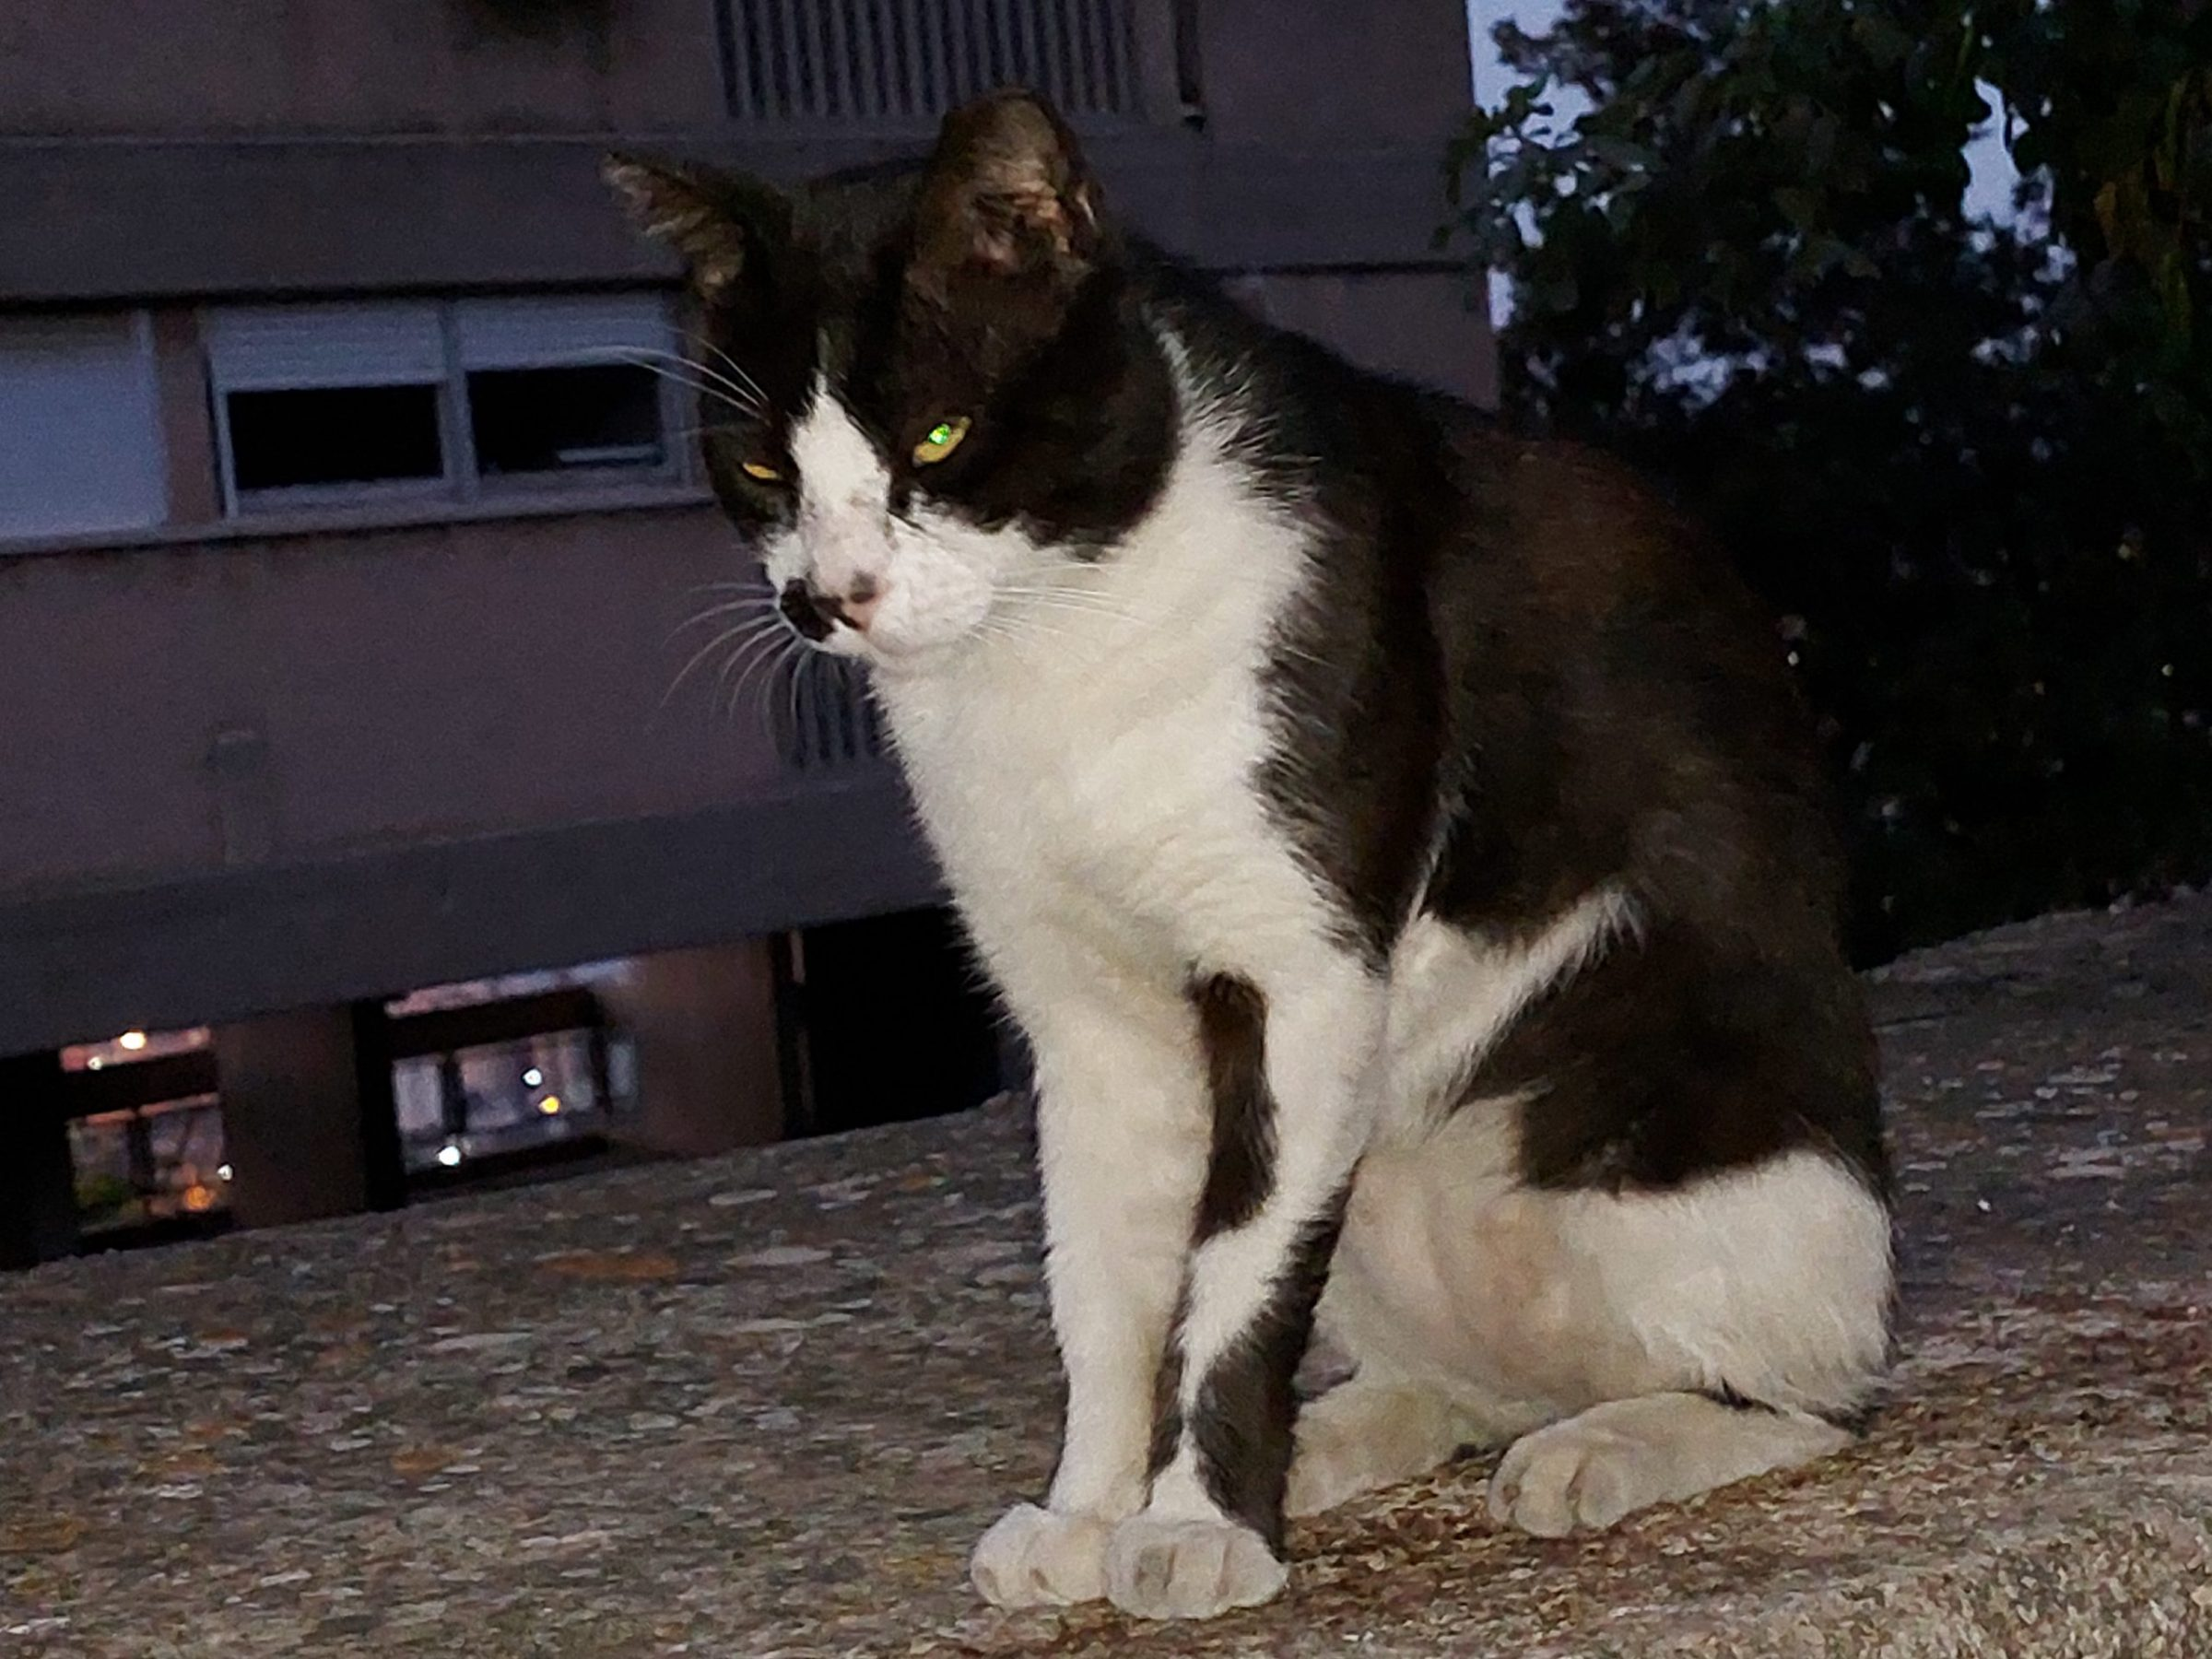 Israel's population of street cats is now believed to have reached the one million mark